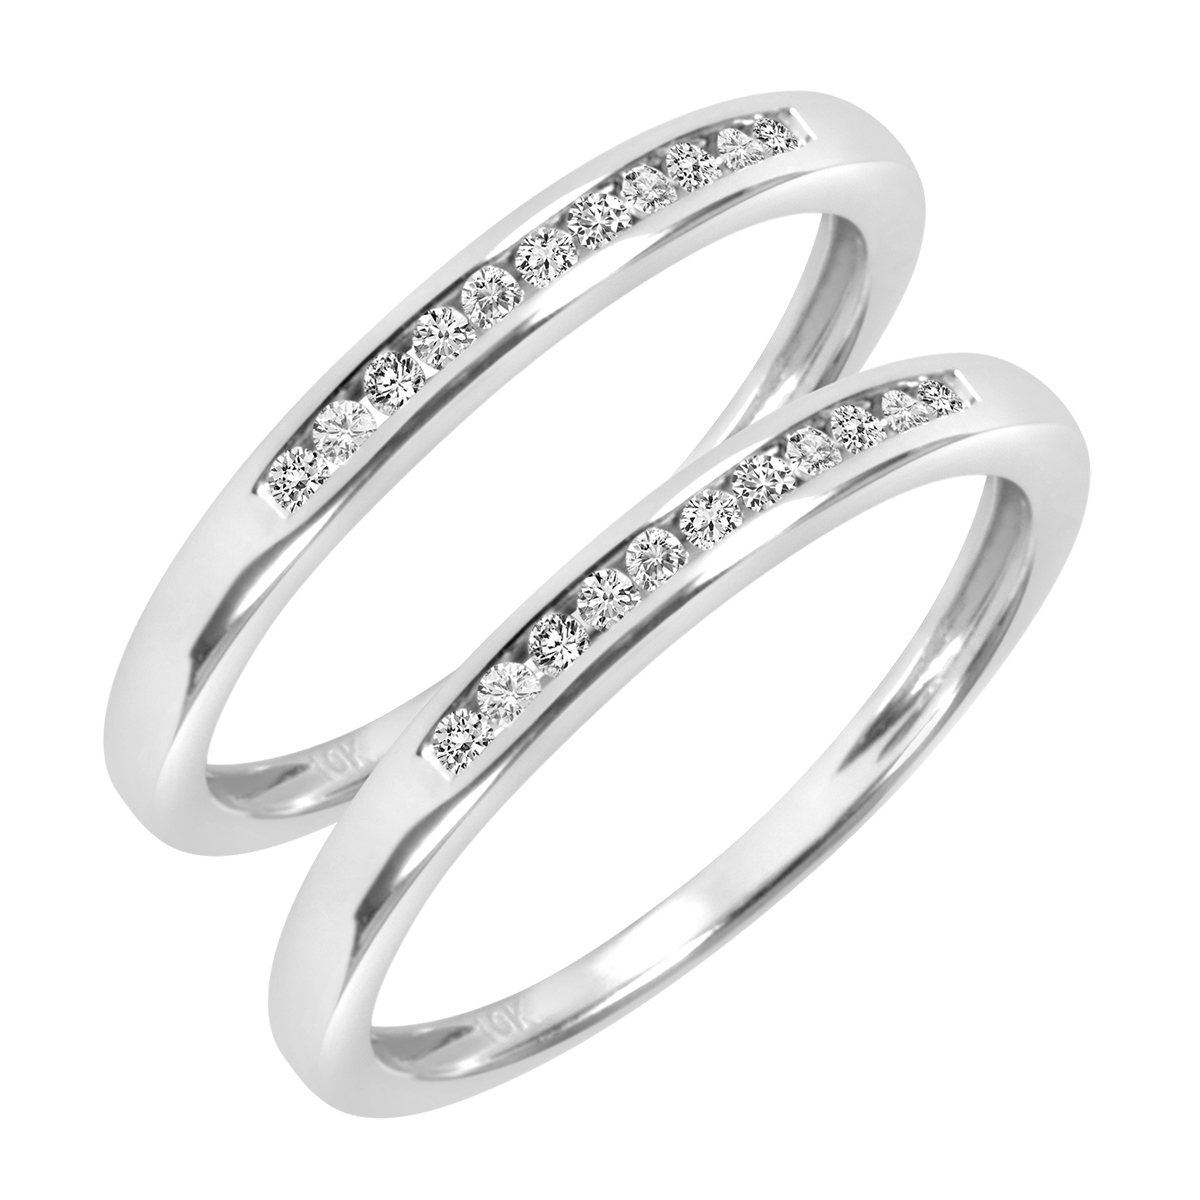 1/5 CT. T.W. Round Cut Ladies Same Sex Wedding Band Set 14K White Gold